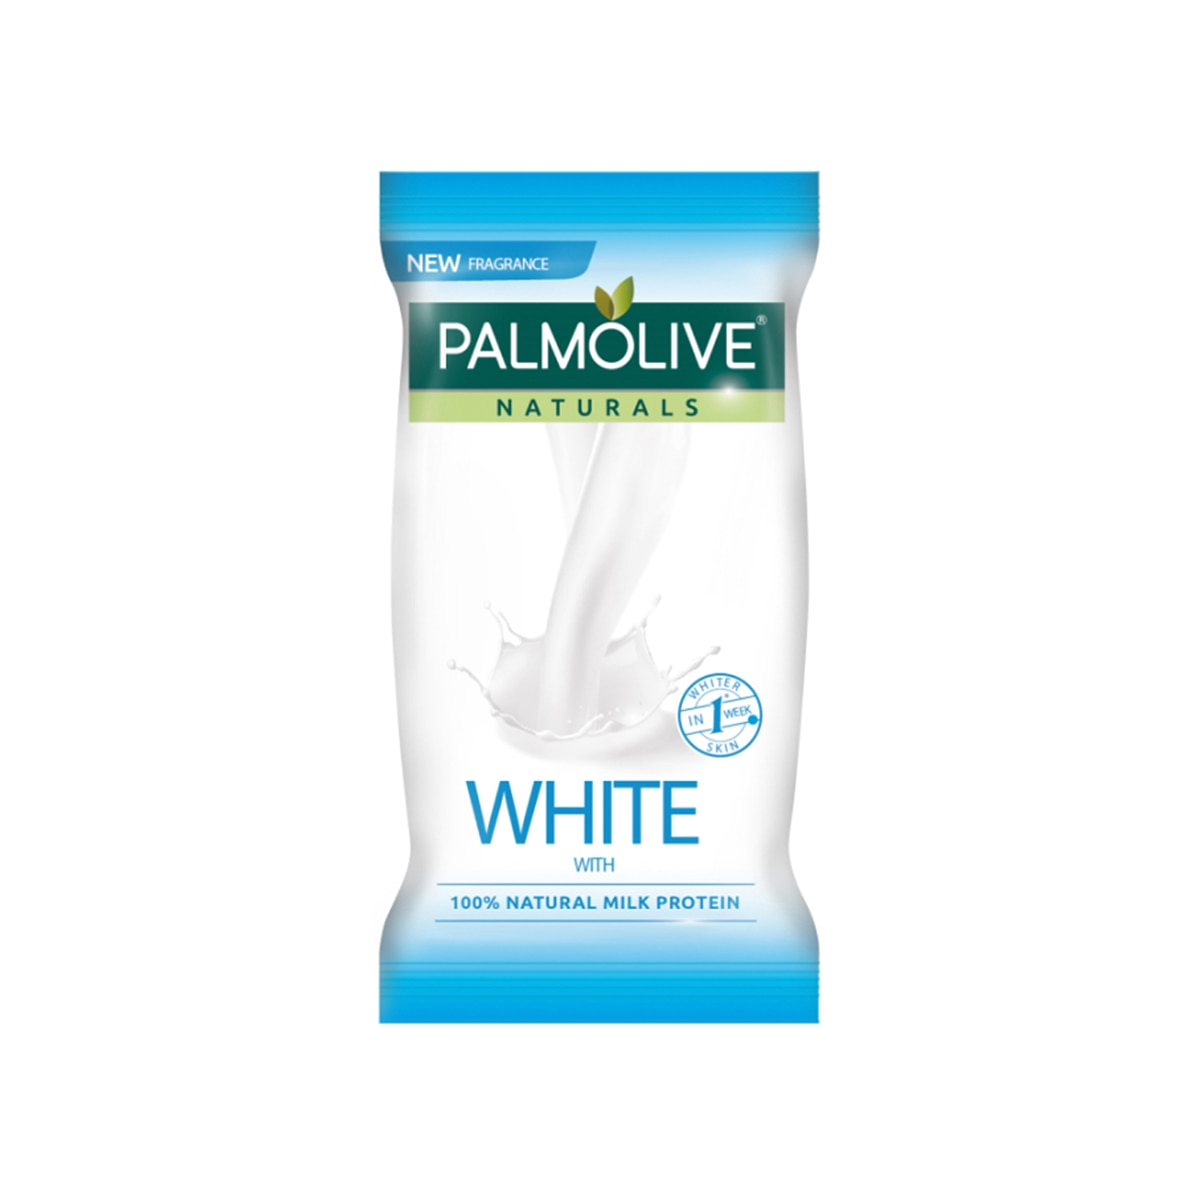 PALMOLIVENaturals White with Milk Whitening Bar Soap 55g,Bar SoapClean Beauty